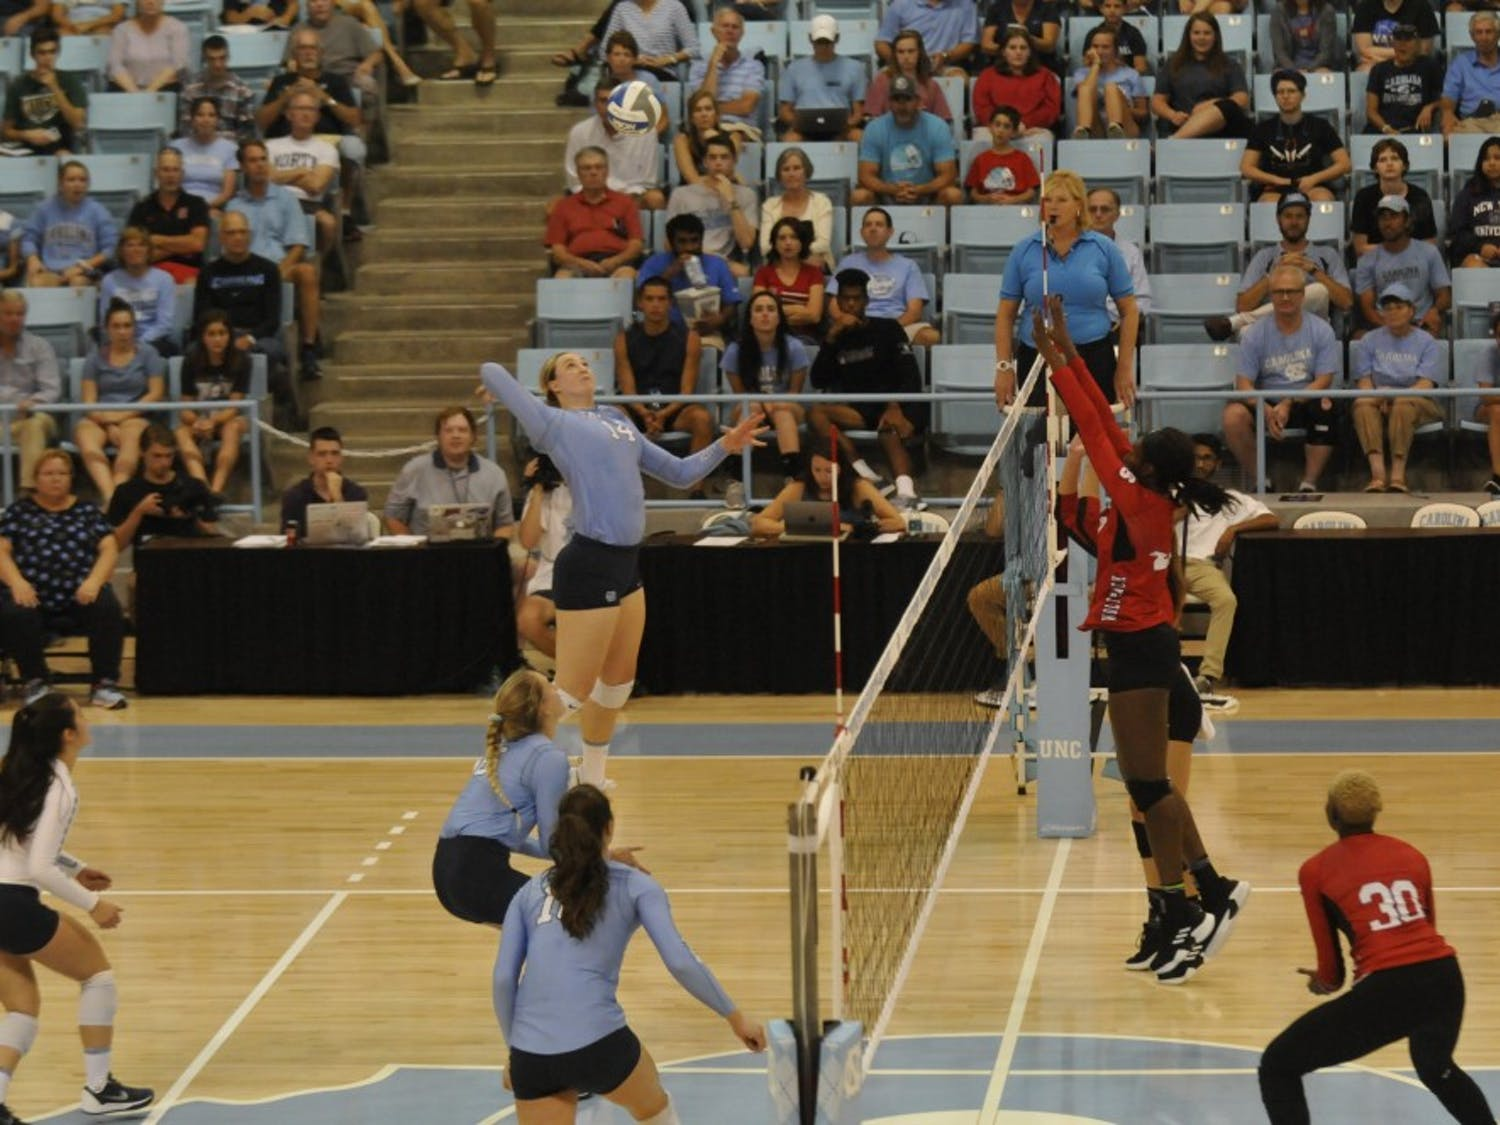 Senior outside hitter Madison Laufenberg (14) spikes the ball towards her NC State opponents on Wednesday, Sept. 26 in Carmichael Arena.